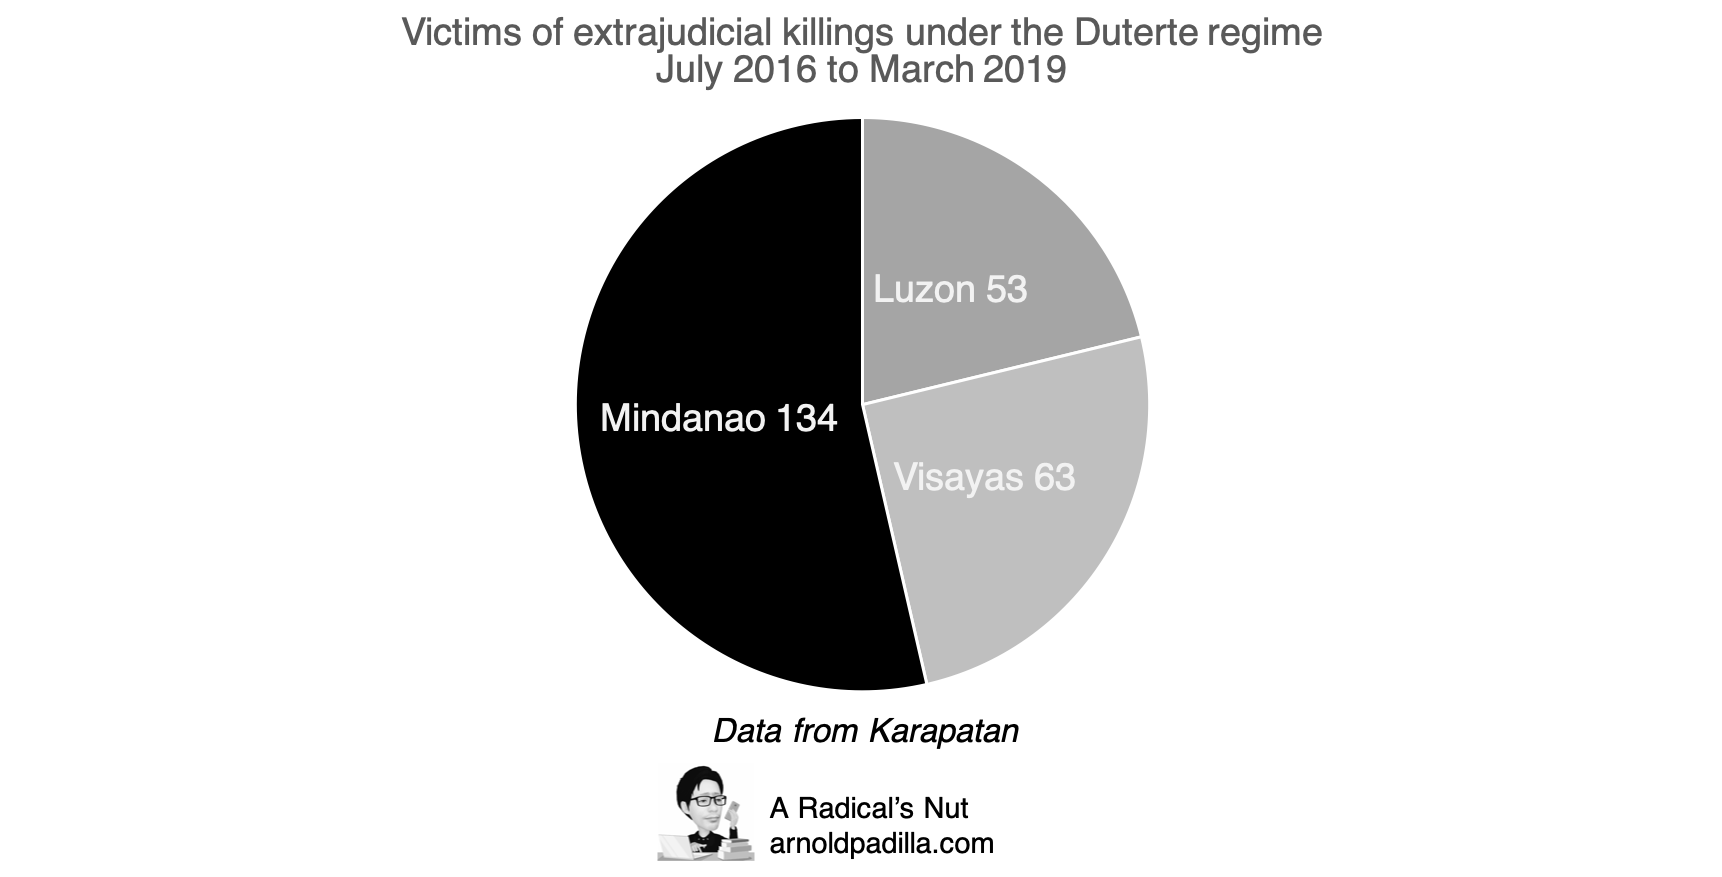 Tab 2 EJK victims by region